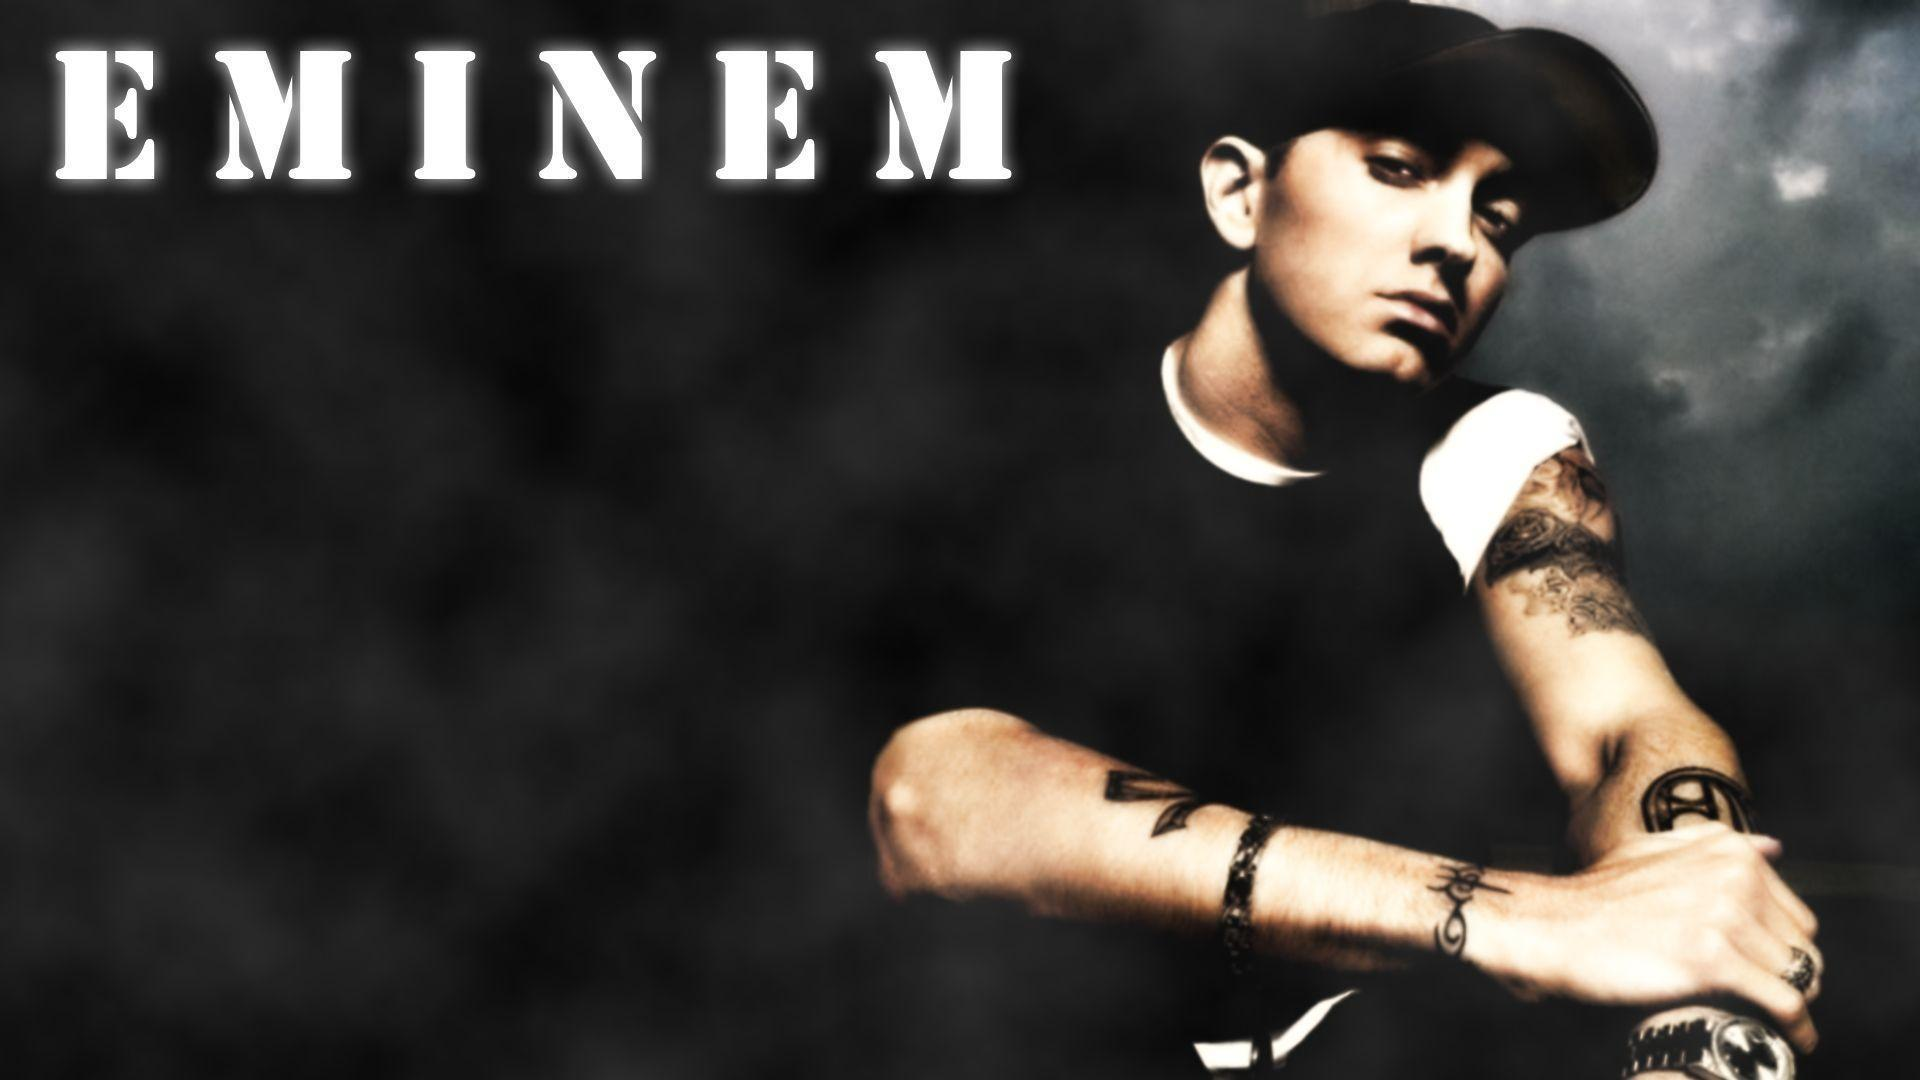 Eminem Wallpapers HD 2017 - Wallpaper Cave